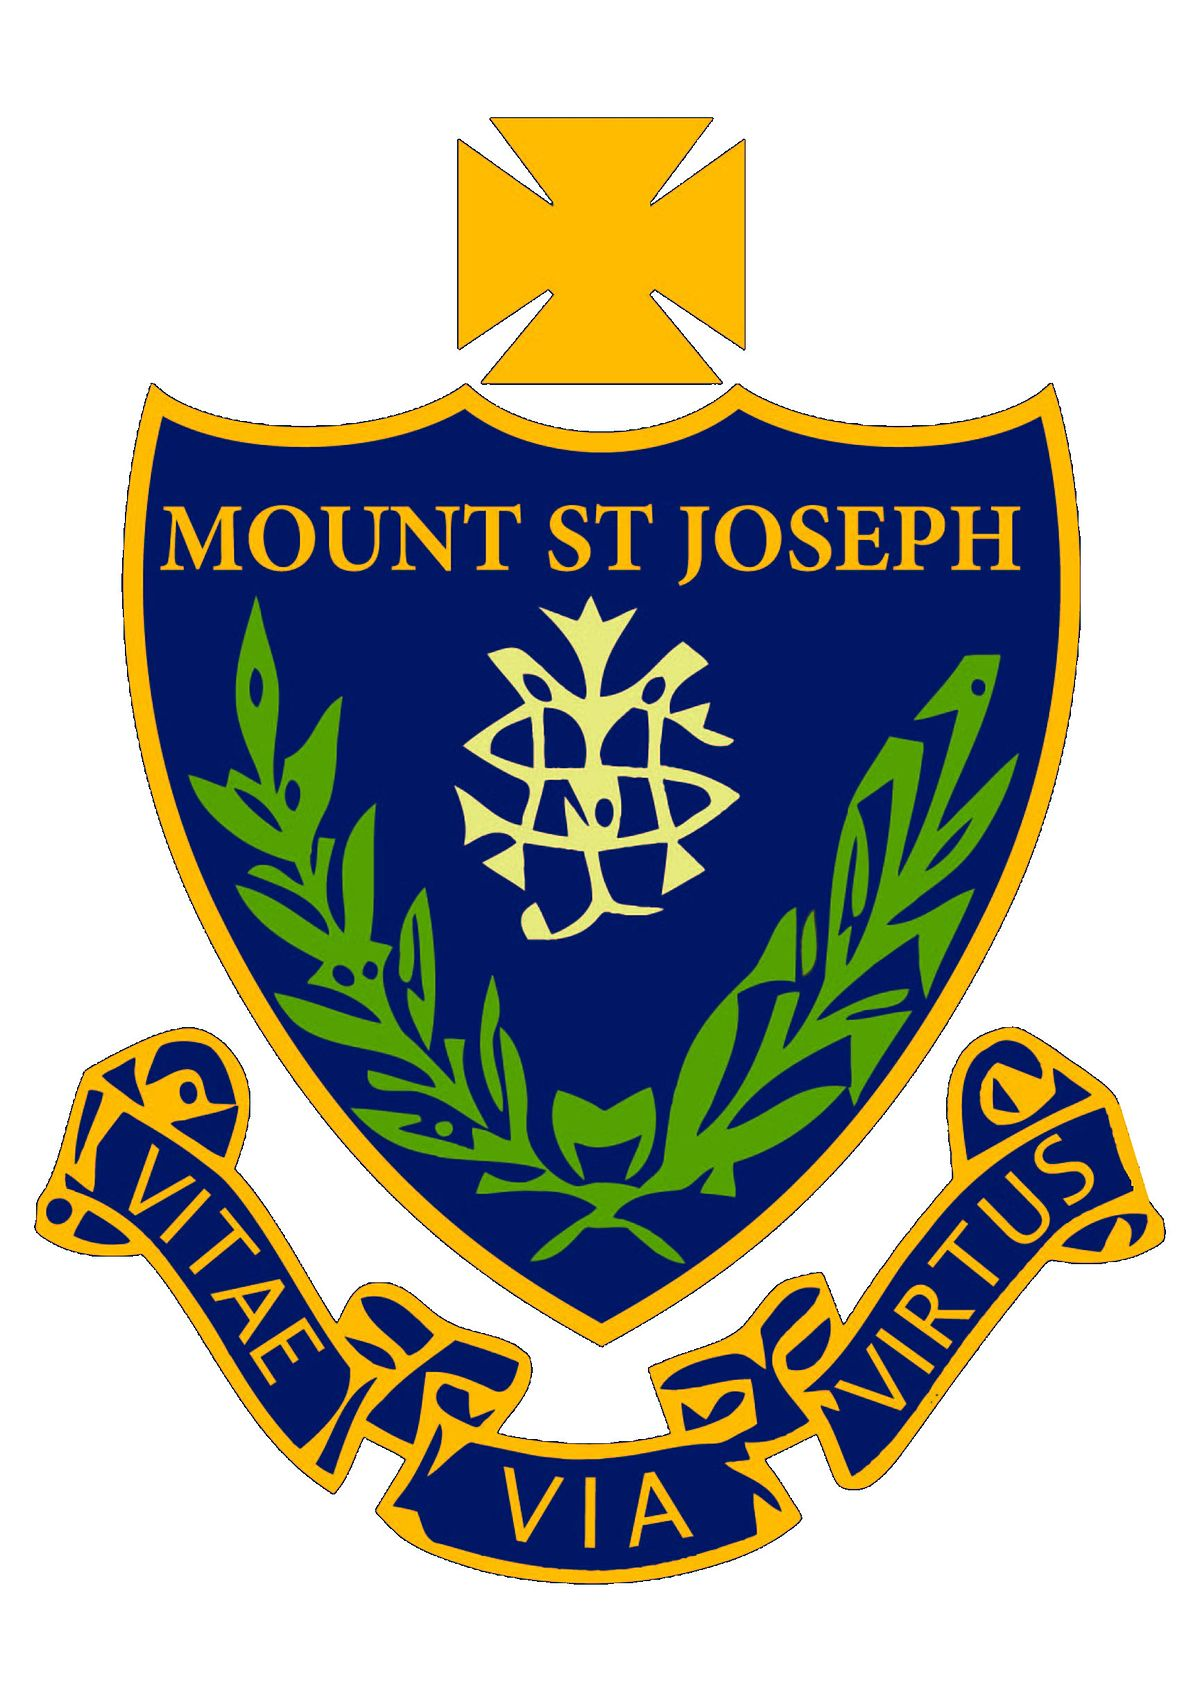 mount saint joseph mature singles Catholic young adults & singles - st francis,  st joseph catholic young adults - portland,  our lady of mount carmel young adumlt inistry - newport news, va:.